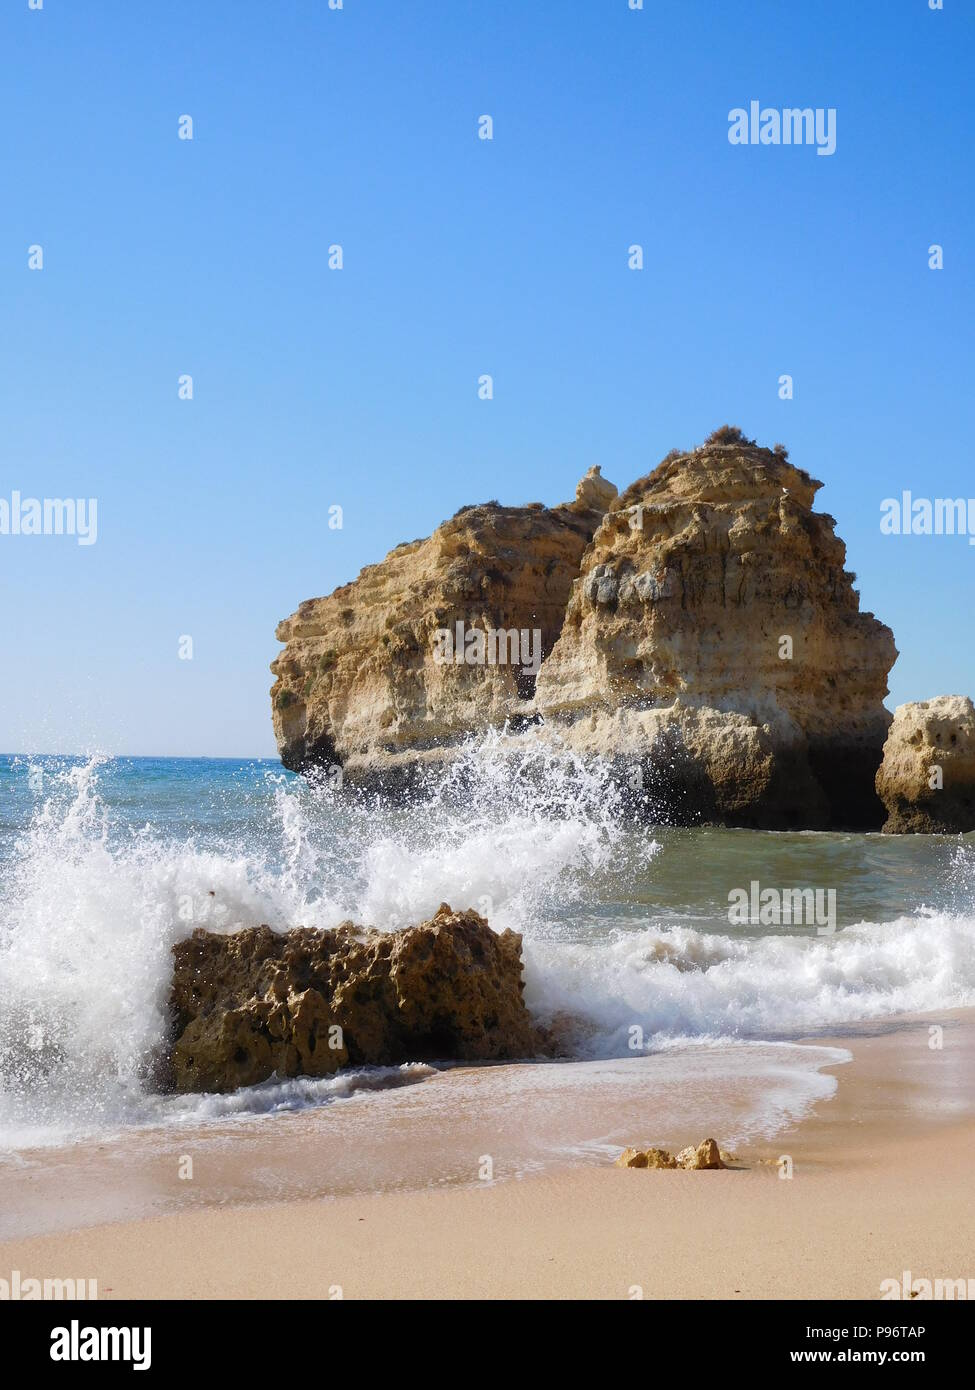 Waves at the beach in Portugal on a sunny day - Stock Image